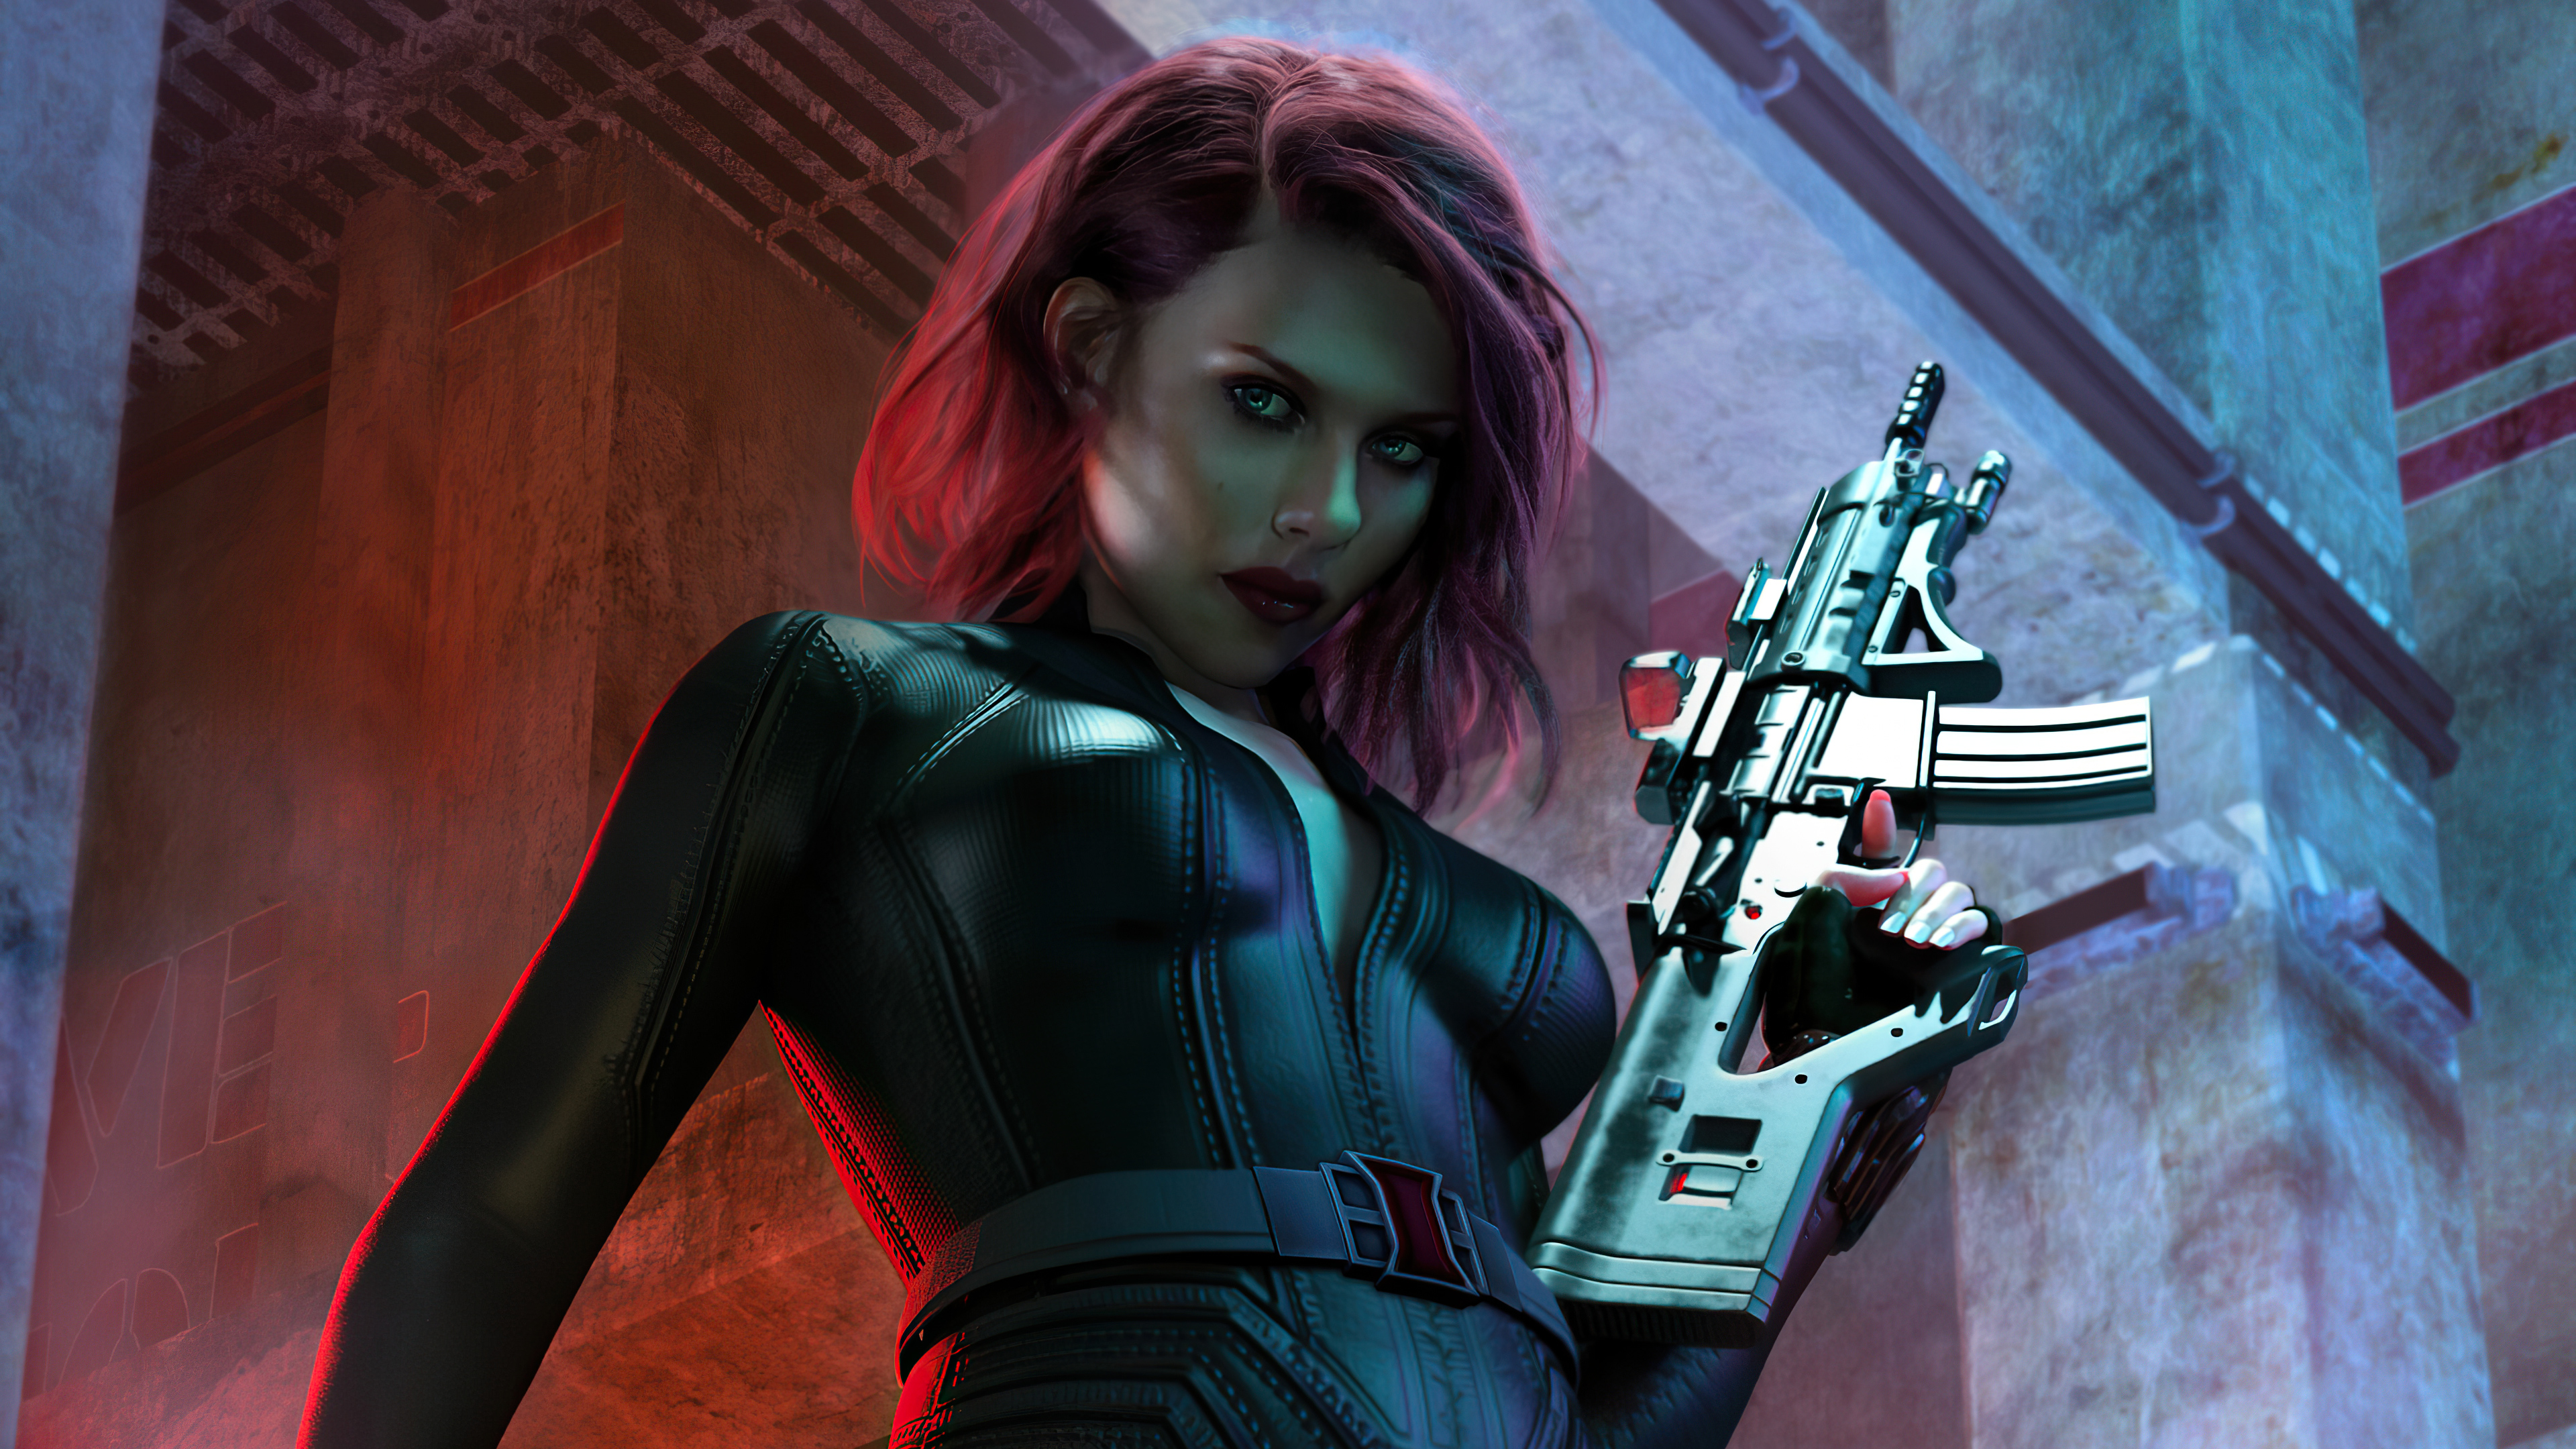 black widow with ak47 4k 1619215933 - Black Widow With Ak47 4k - Black Widow With Ak47 4k wallpapers